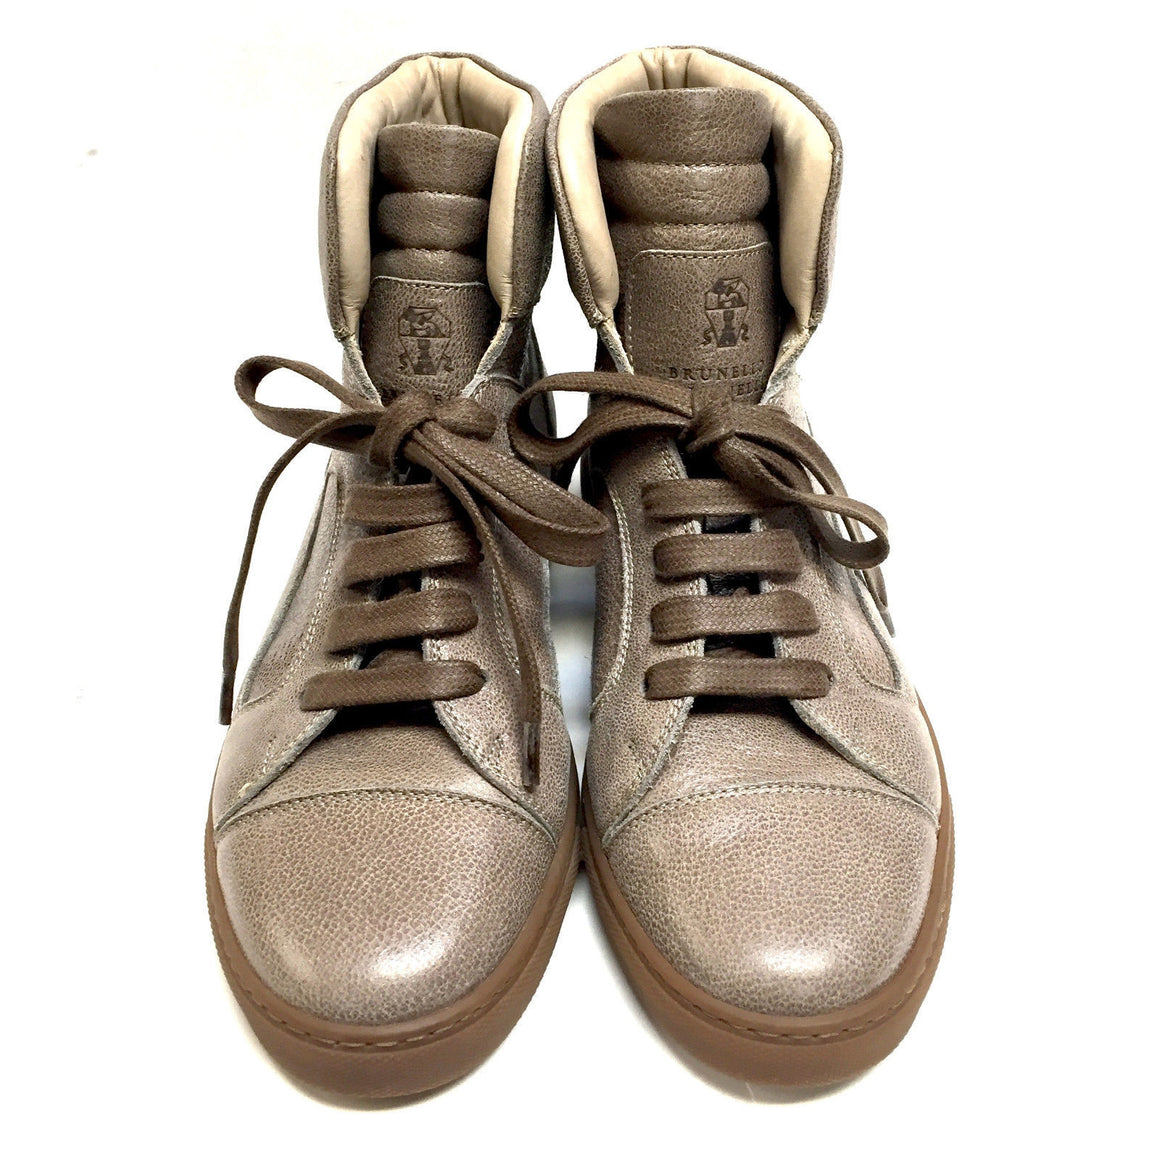 bisbiz.com BRUNELLO CUCINELLI  Taupe Grained Leather Hi-Top Sneakers Shoes   Size: 38.5 / 8.5 - Bis Luxury Resale